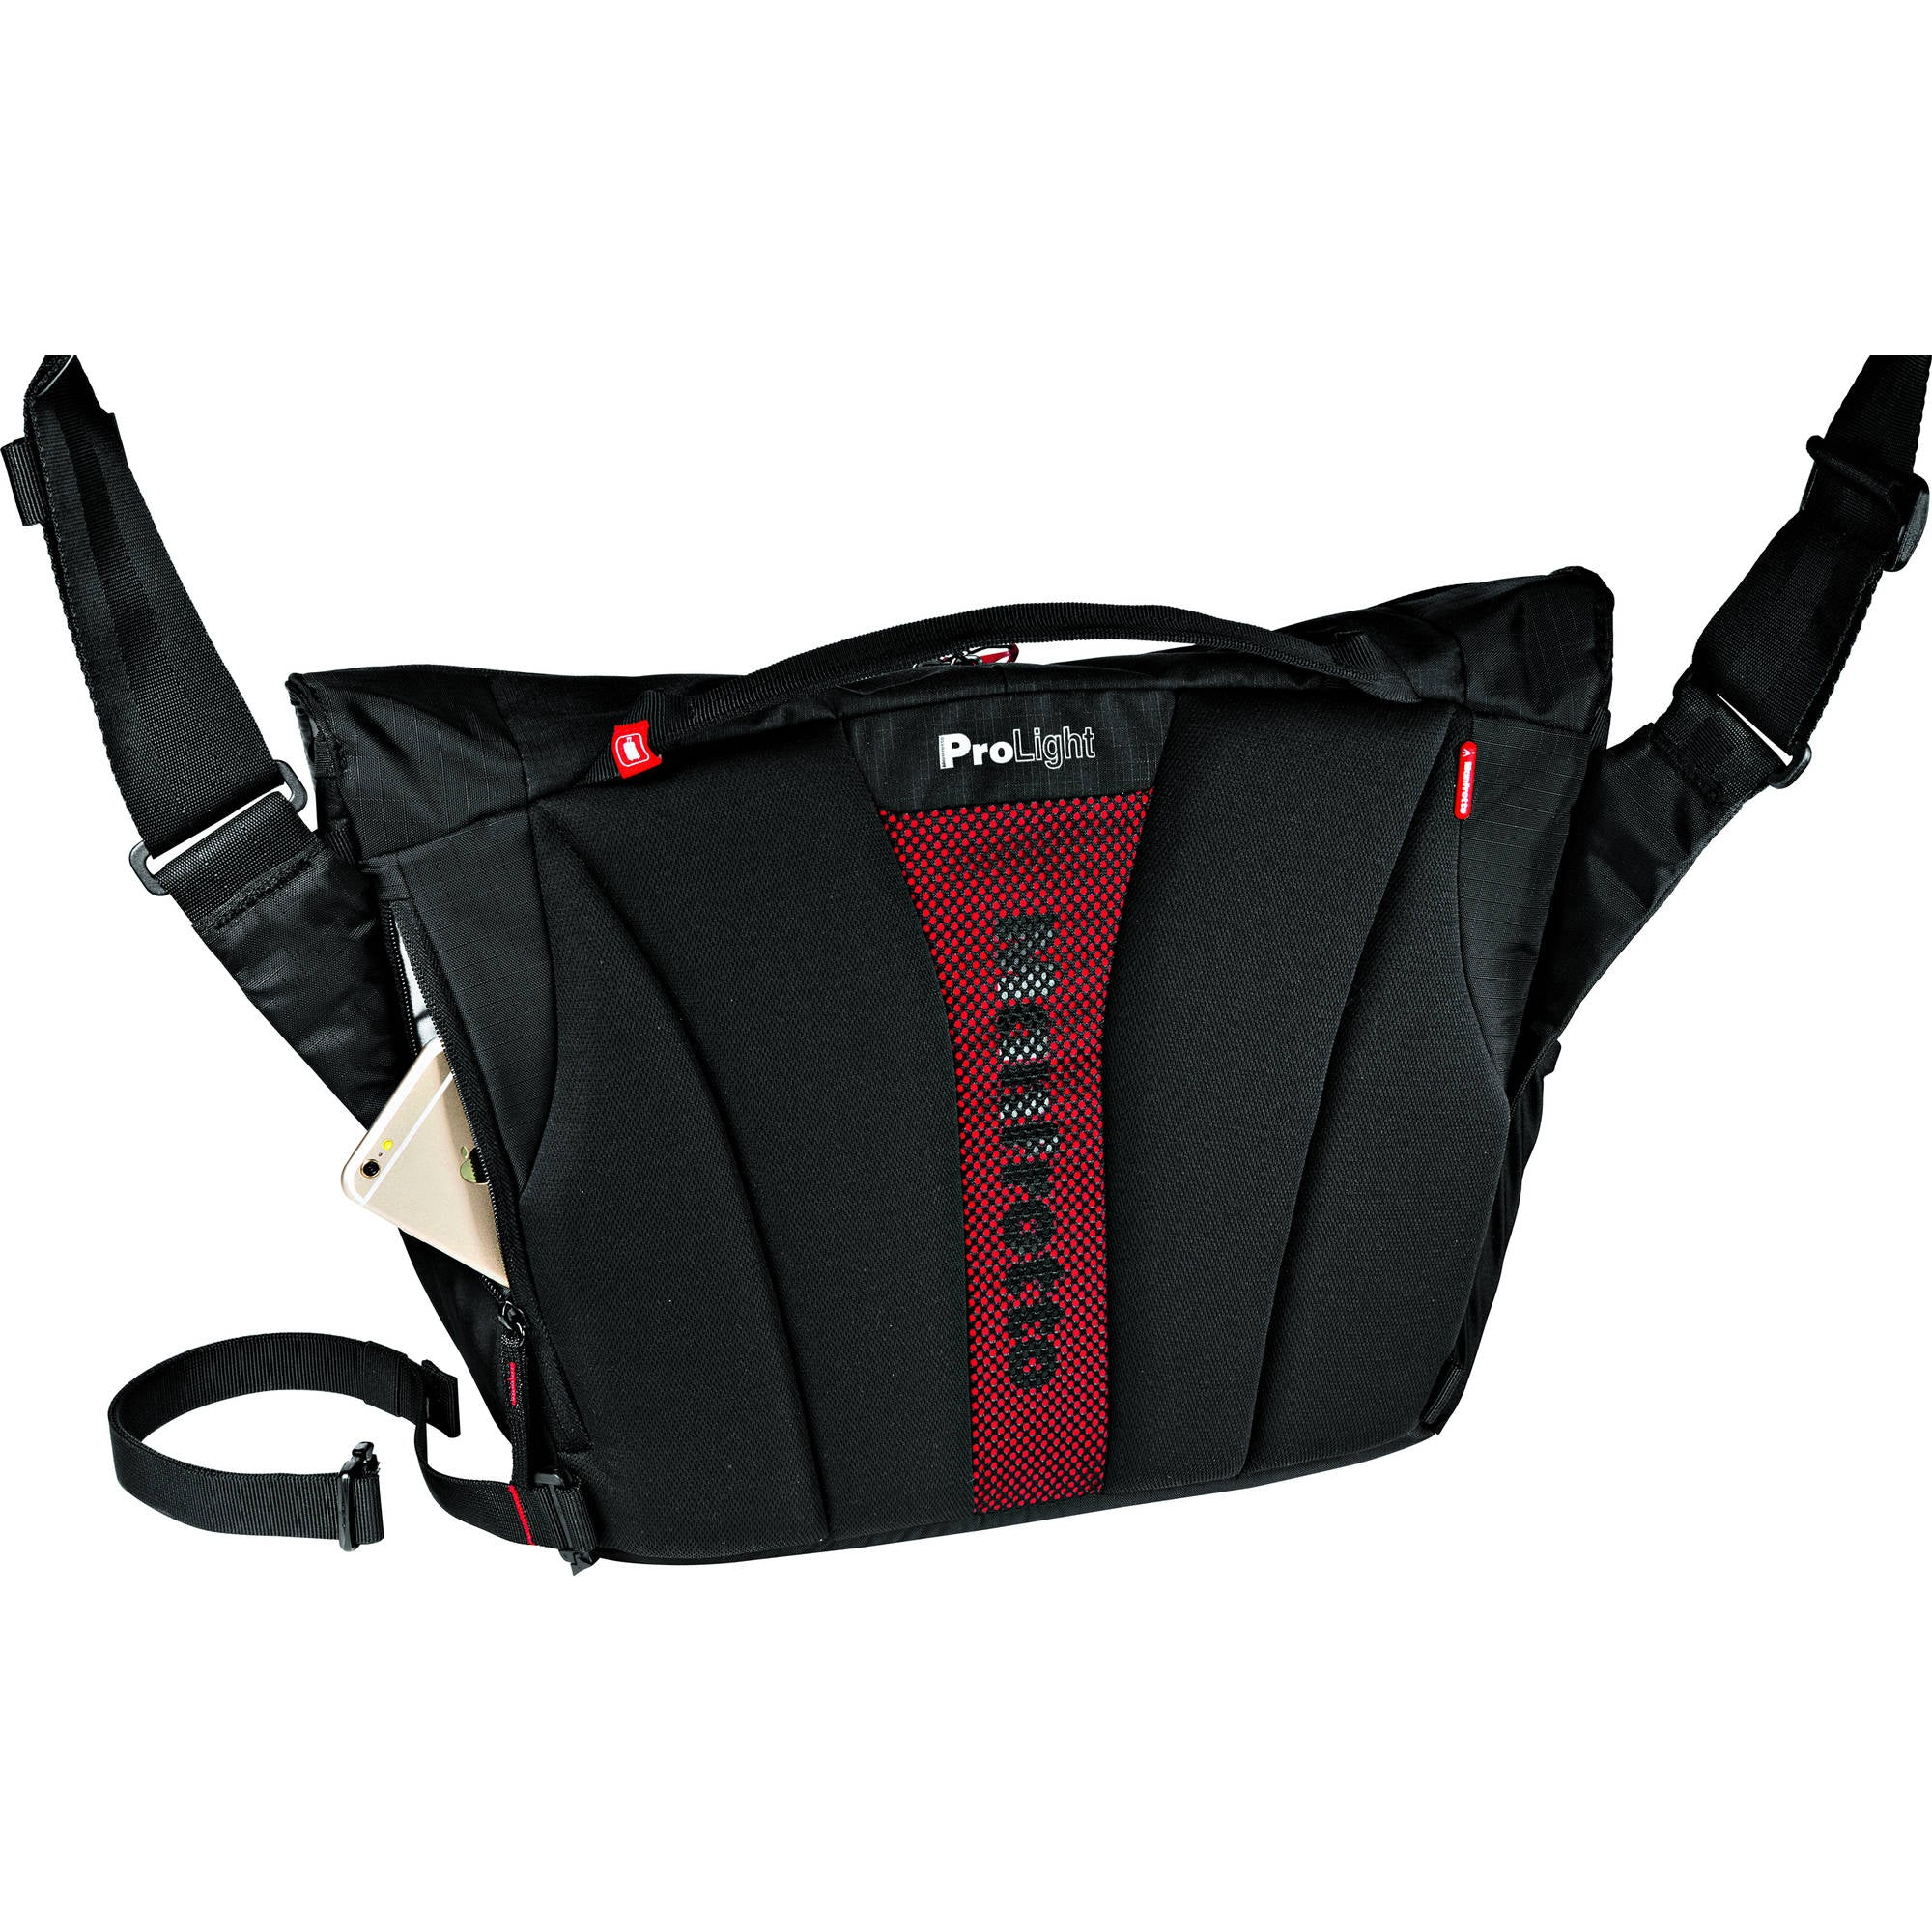 Manfrotto Pro Light Bumblebee M-30 Camera Bag (Black)